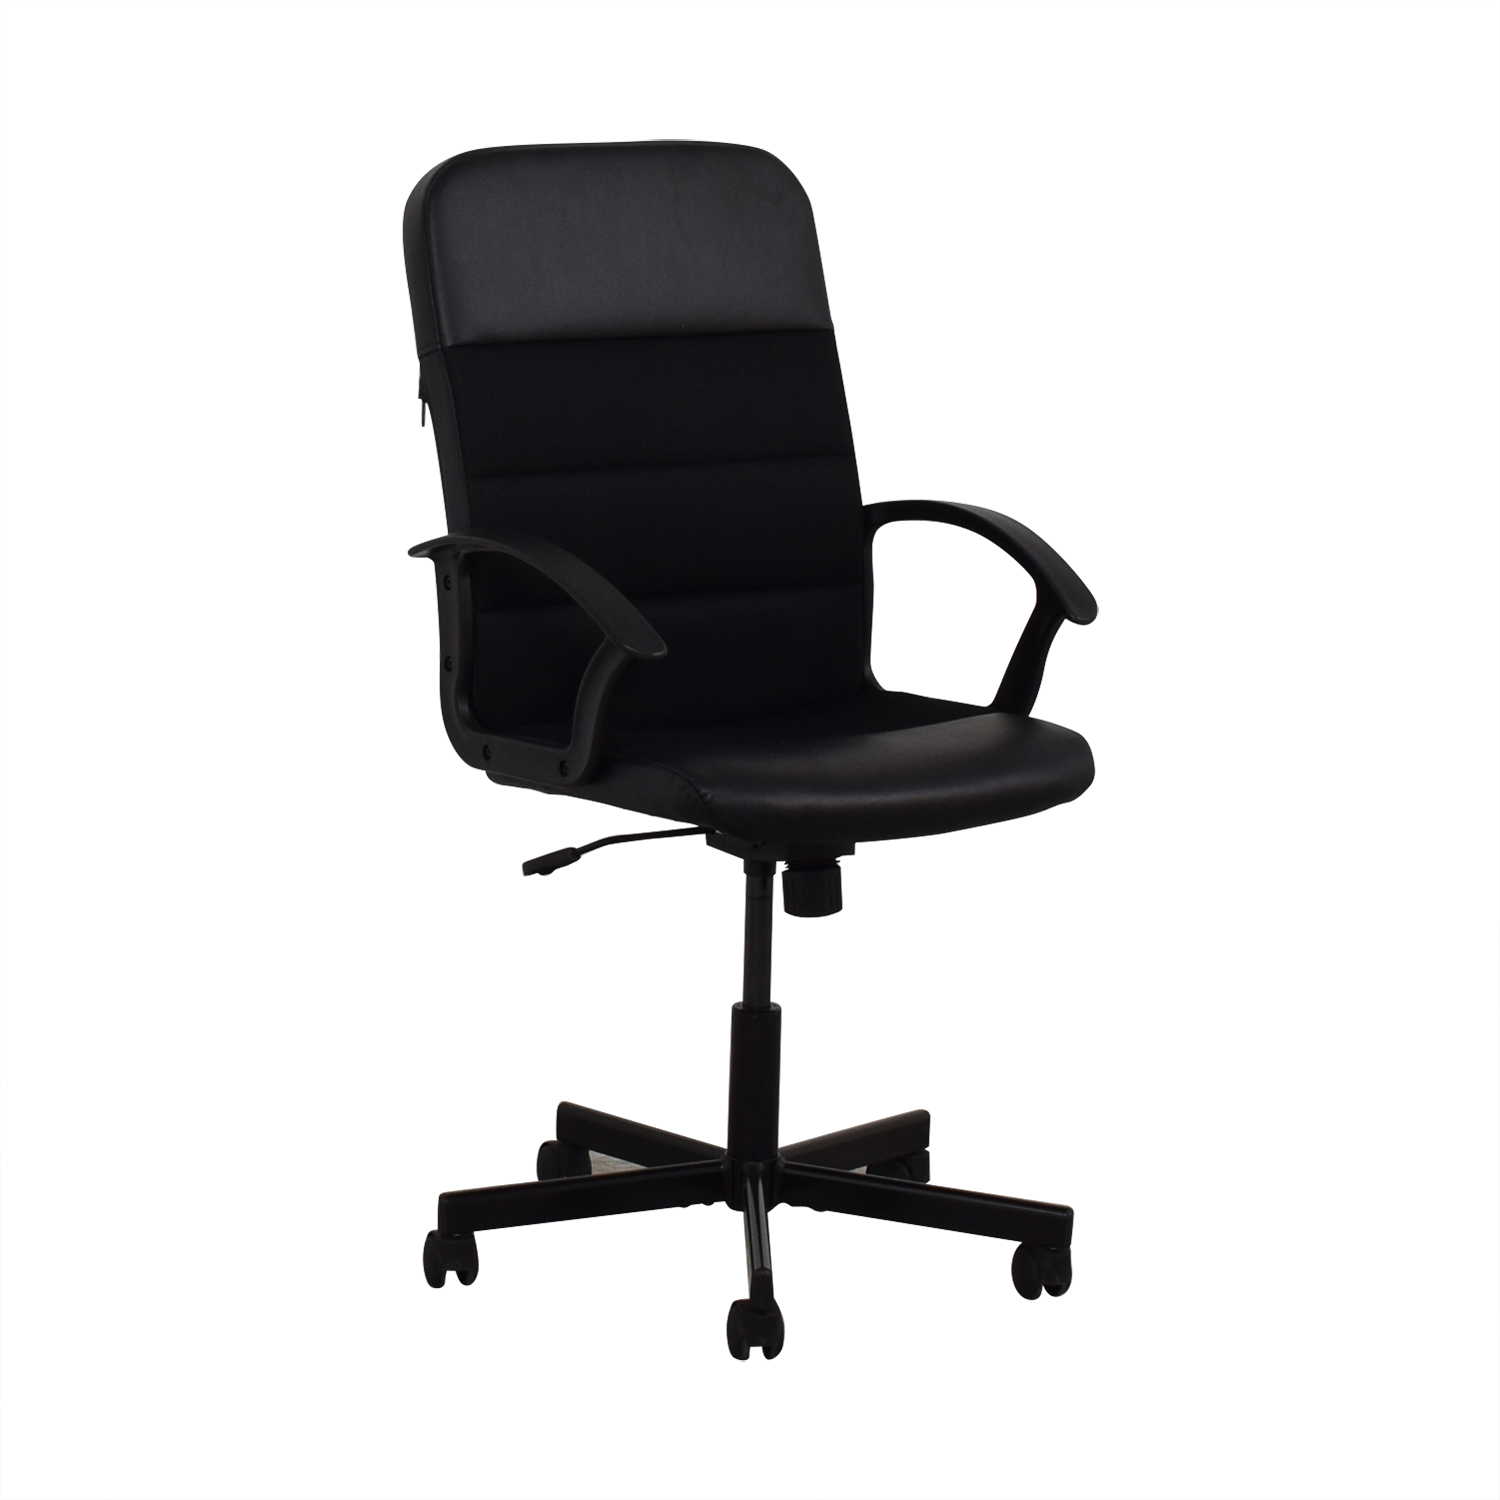 46% OFF - IKEA IKEA Renberget Office Chair / Chairs